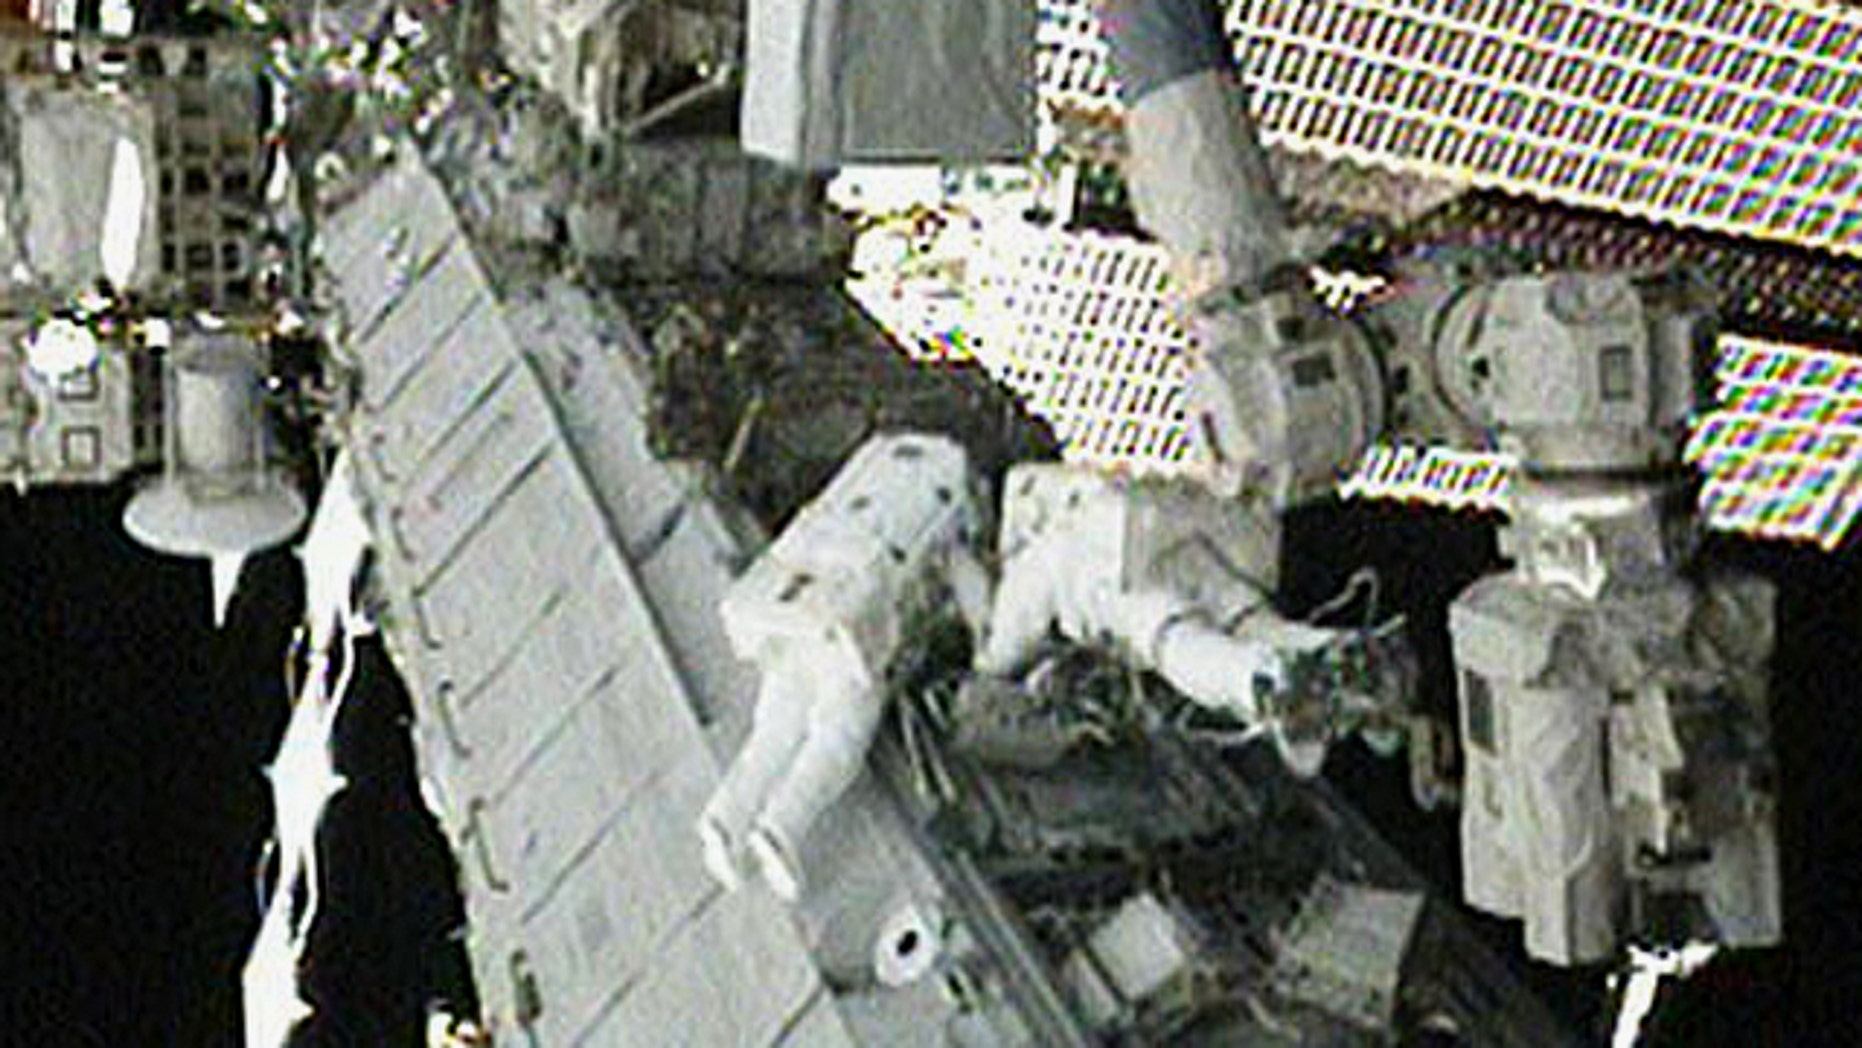 NASA astronauts Tracy Caldwell Dyson (left) and Doug Wheelock work to set up the ammonia spare pump module after it was installed on the S1 Truss during an Aug. 16, 2010 spacewalk outside the International Space Station. It was the third spacewalk dedicated to the repair.